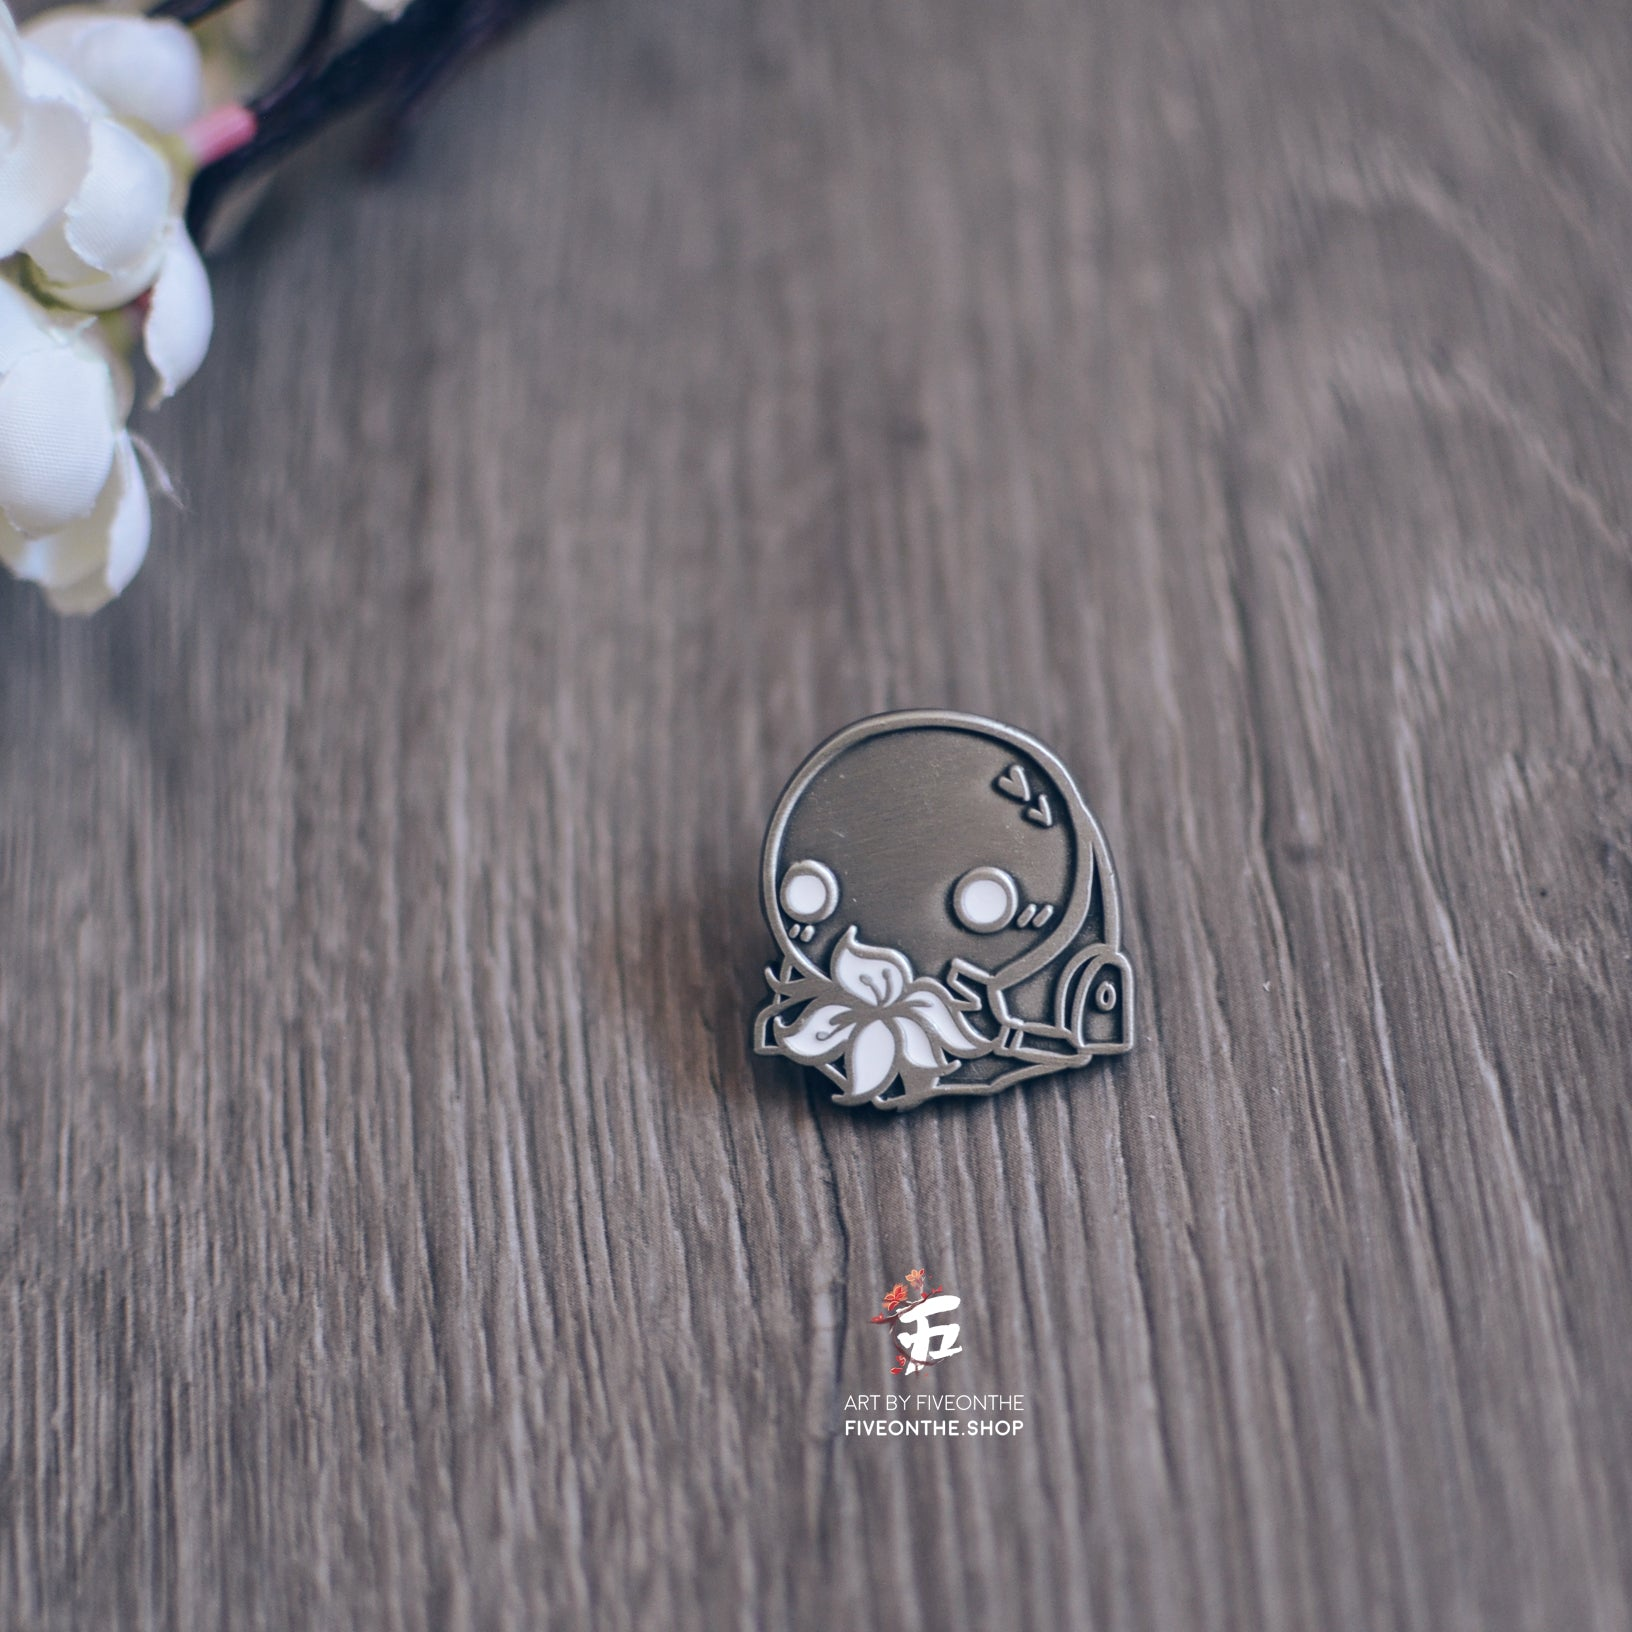 Machine Lifeform ✦ NieR Automata Enamel Pin